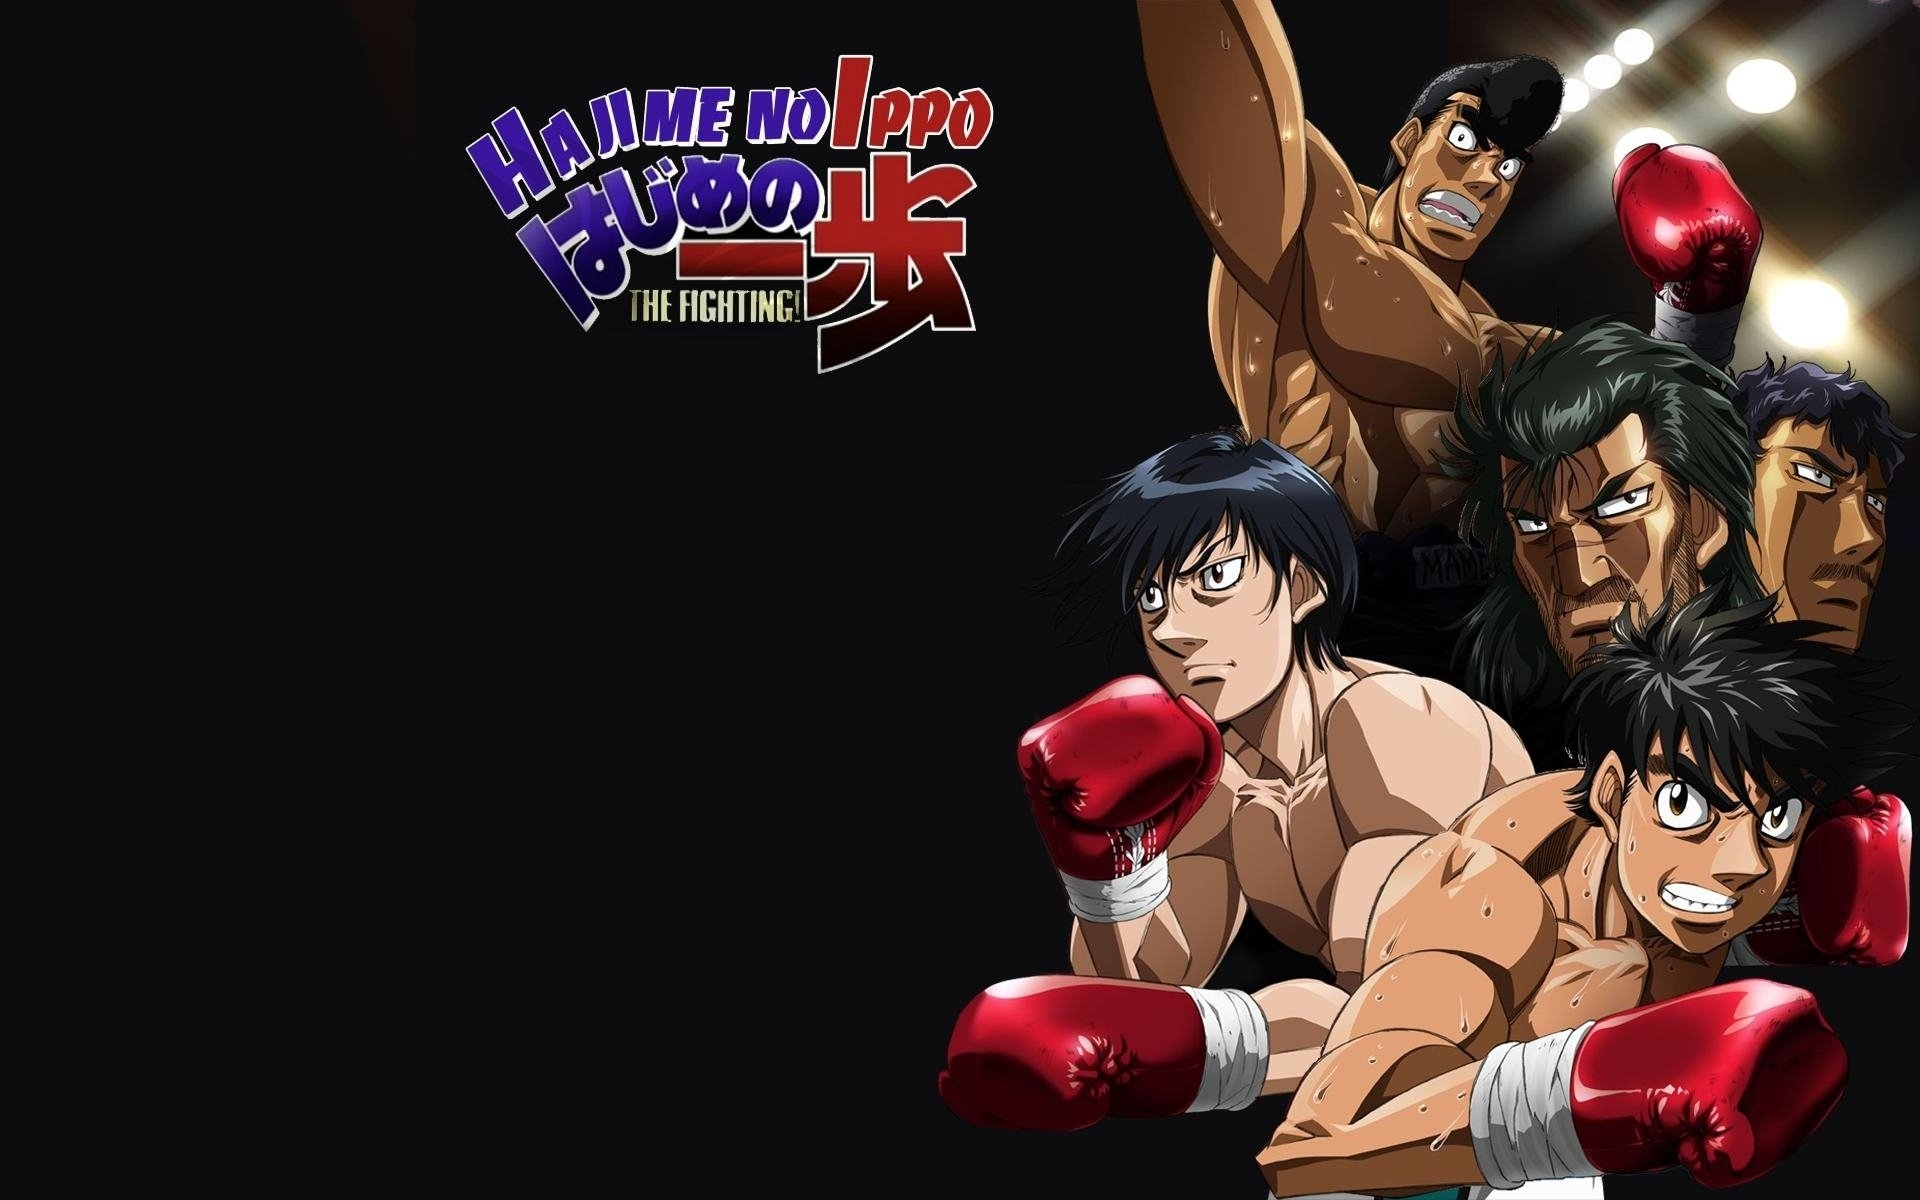 7 hajime no ippo hd wallpapers | background images - wallpaper abyss